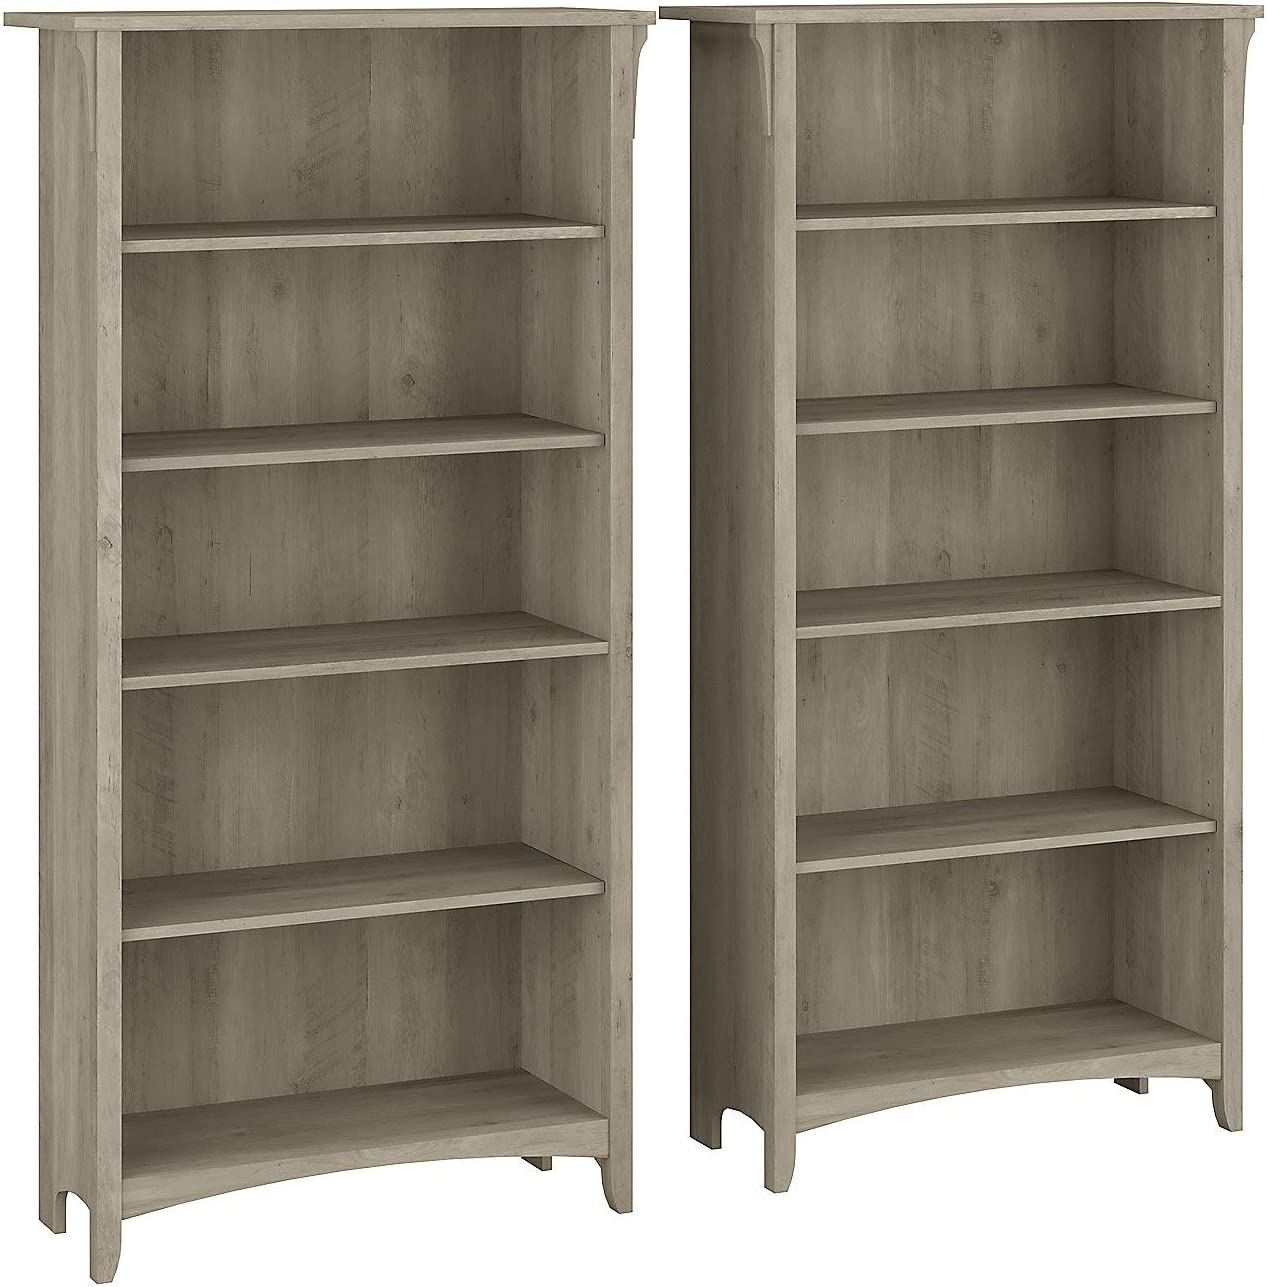 Bush Furniture Salinas Tall 5 Award-winning store Shelf 2 of - Set All stores are sold Driftwo Bookcase